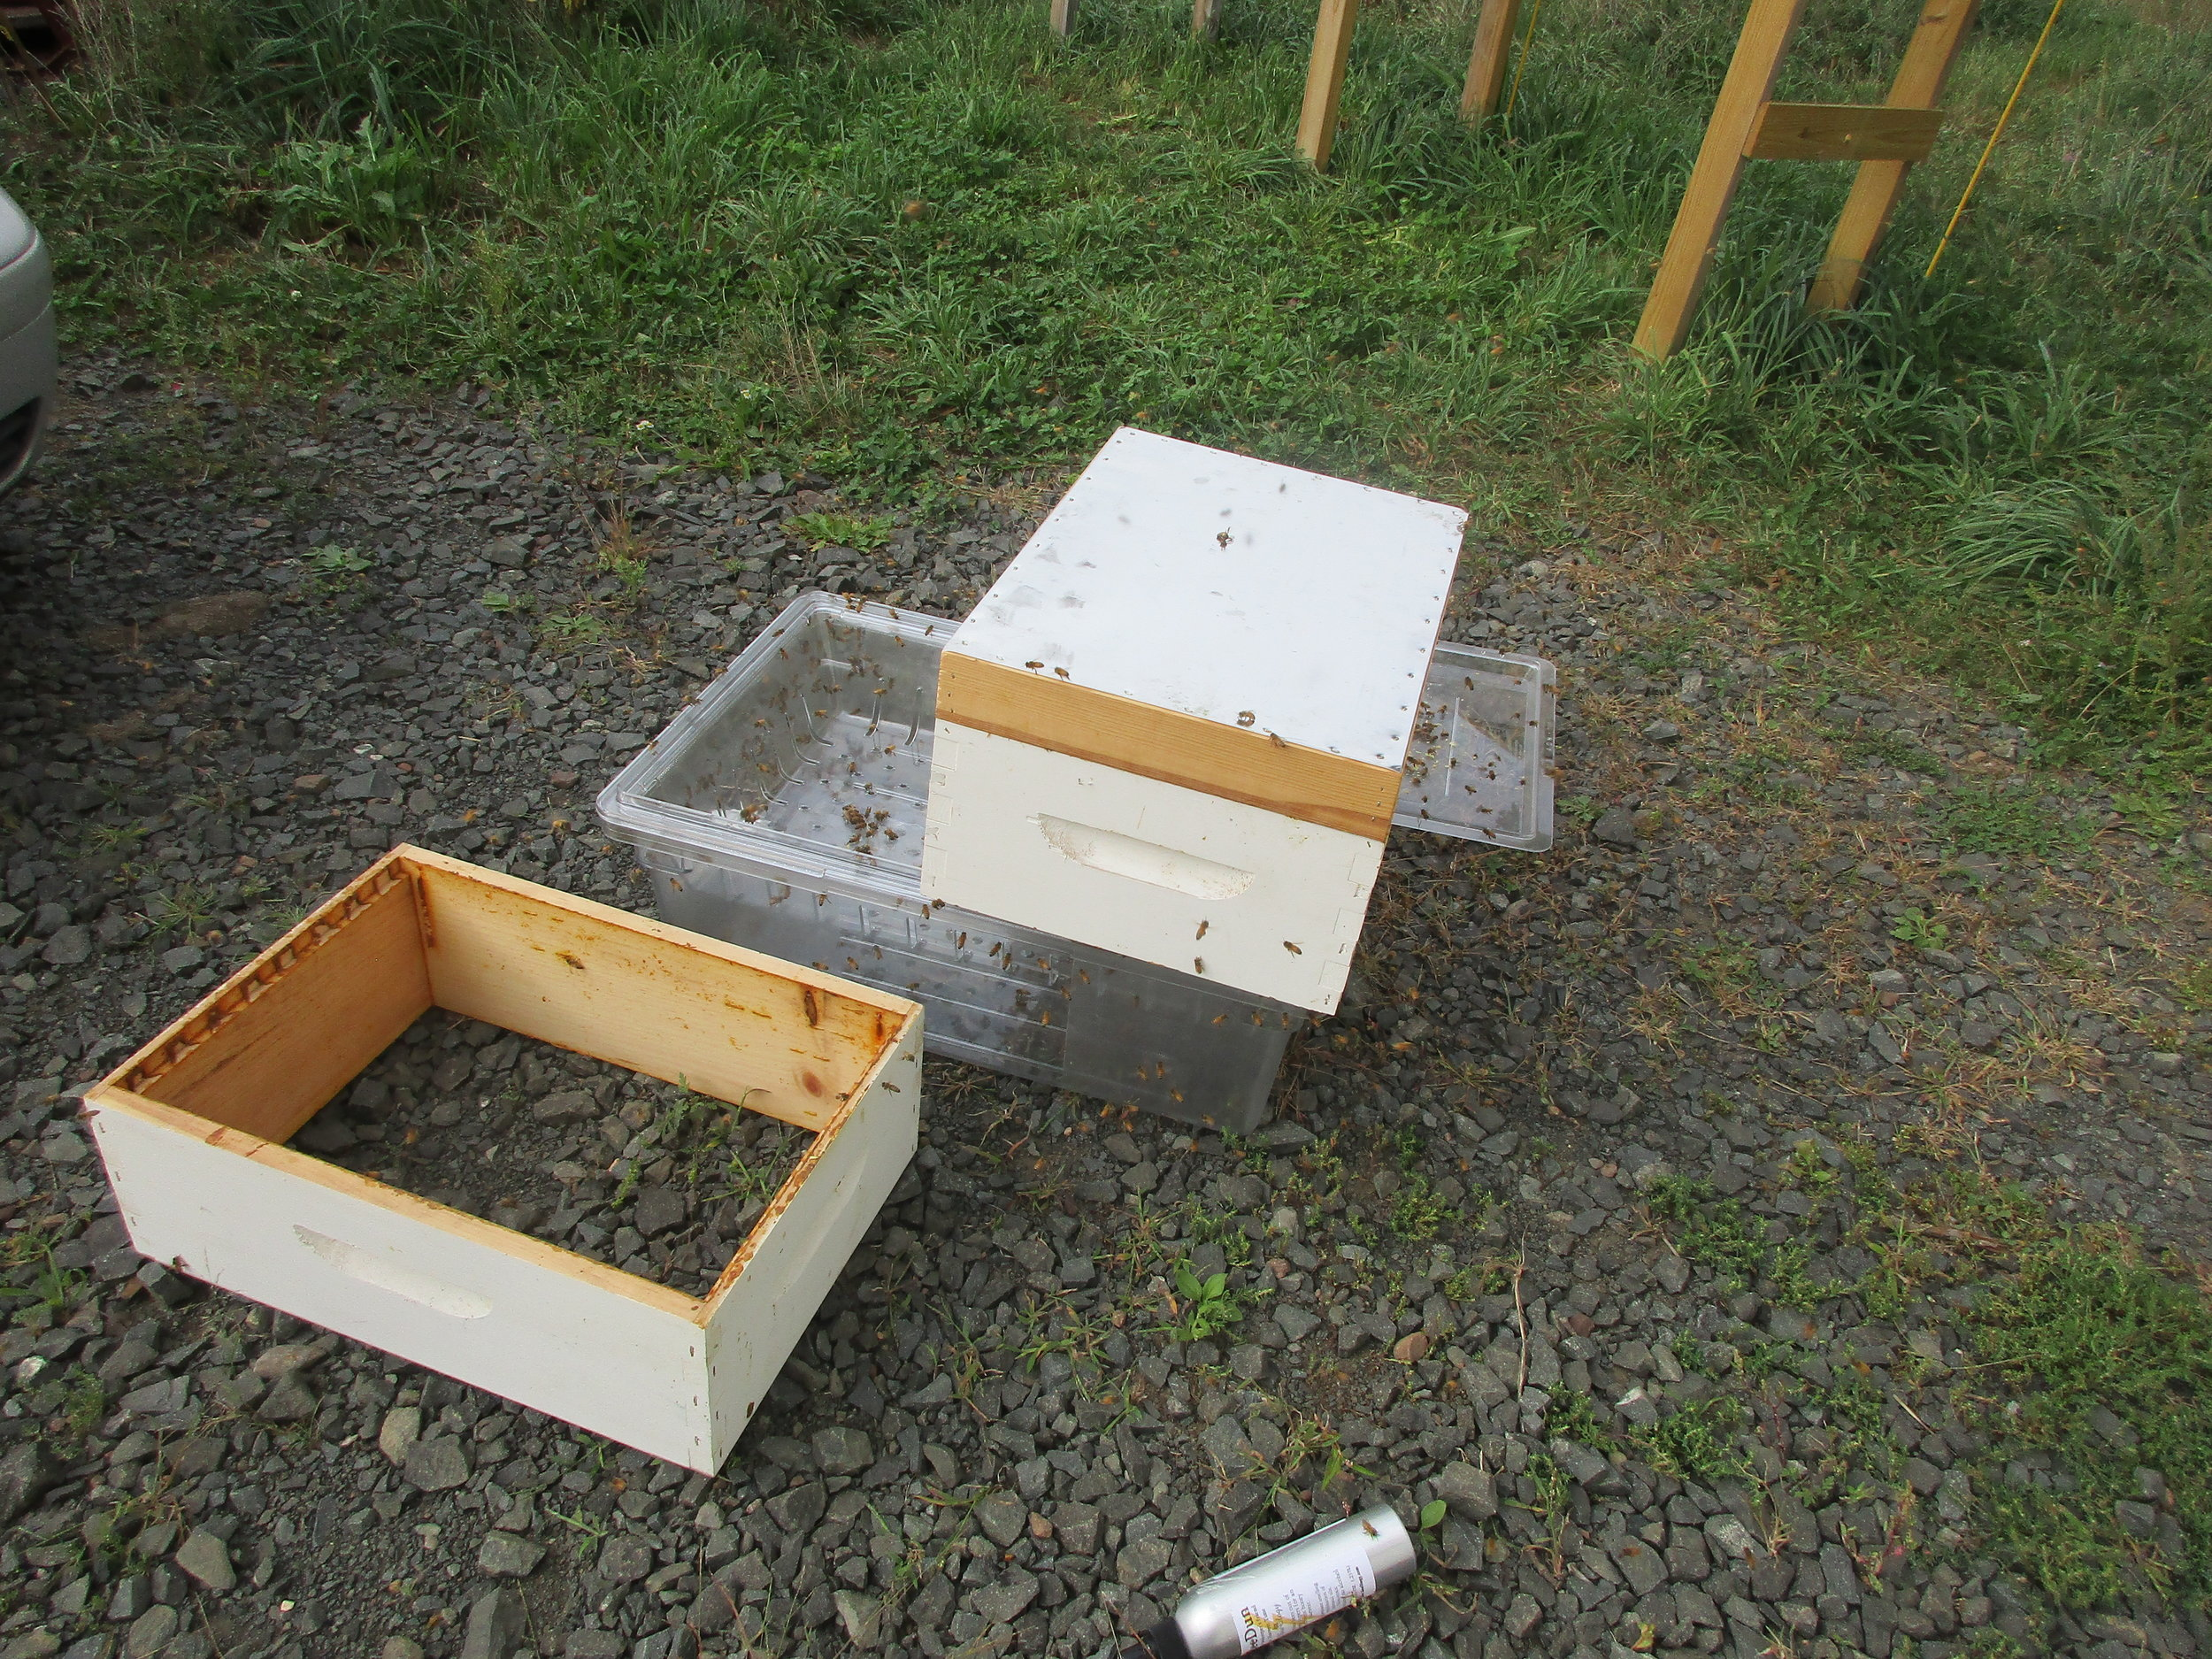 "A super sitting on the plastic processing tub in front of our garage, with the bee repellent board on top, in a vain effort to get the bees to leave. Bee repellent container on the ground in front. (A ""super"" is a hive box with frames like the boxes that make up the hive, but it is not as deep.)"